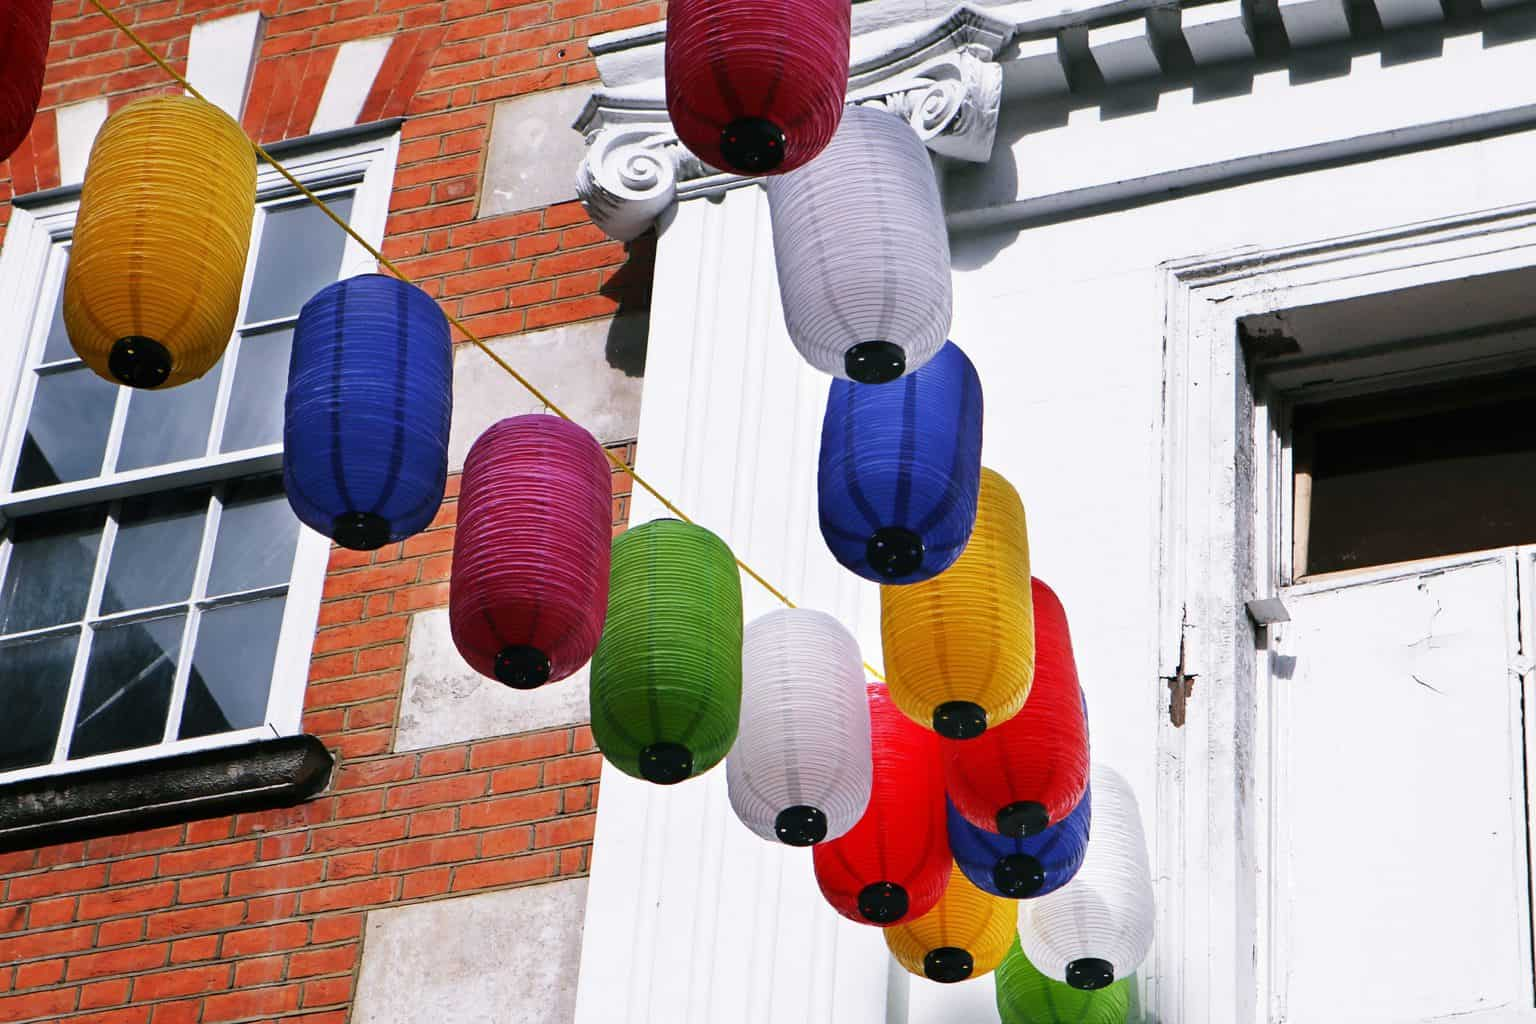 Photo of Lanterns in London Chinatown during COVID-19 Pandemic.